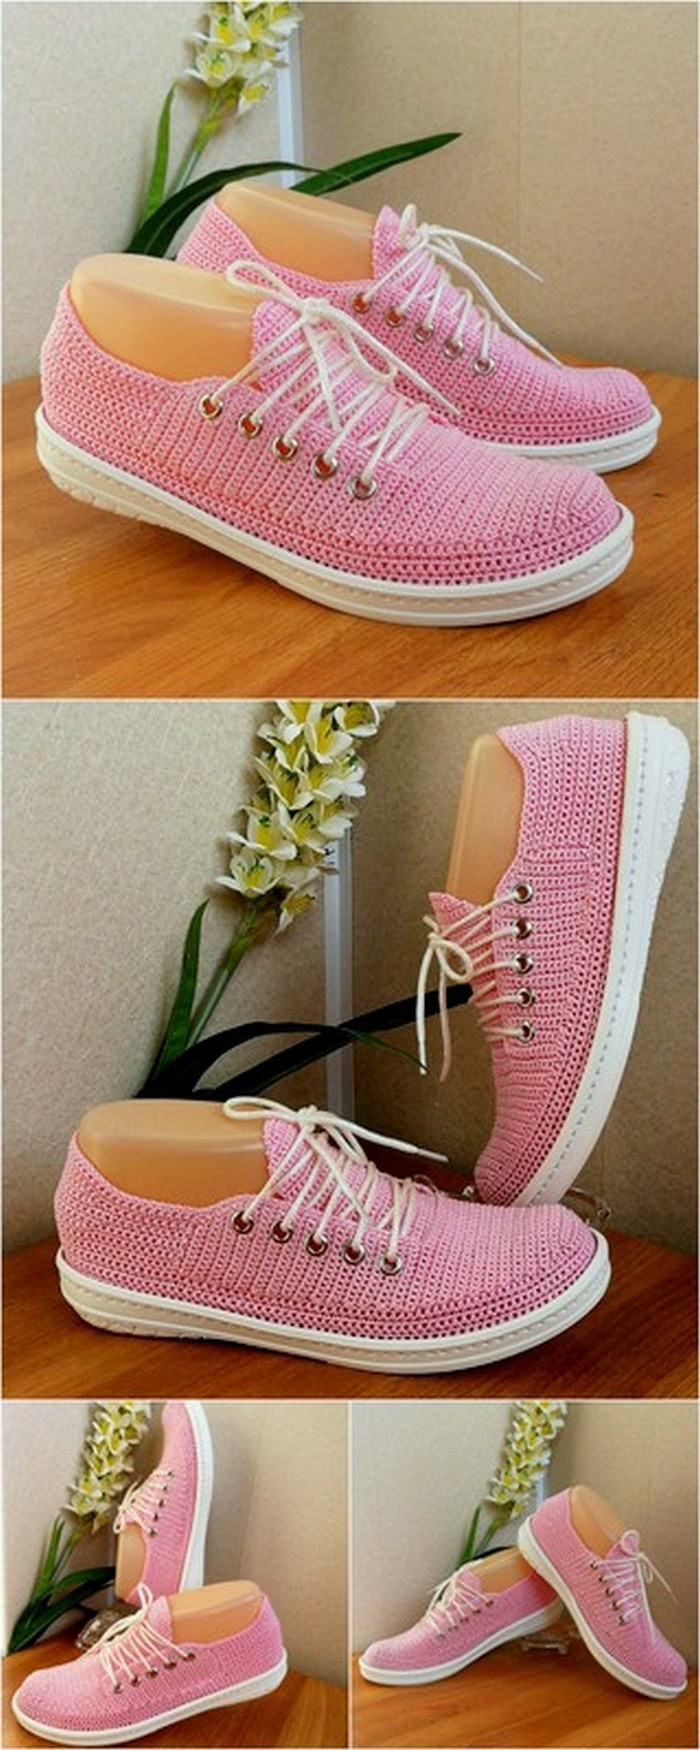 adorable crochet shoes design